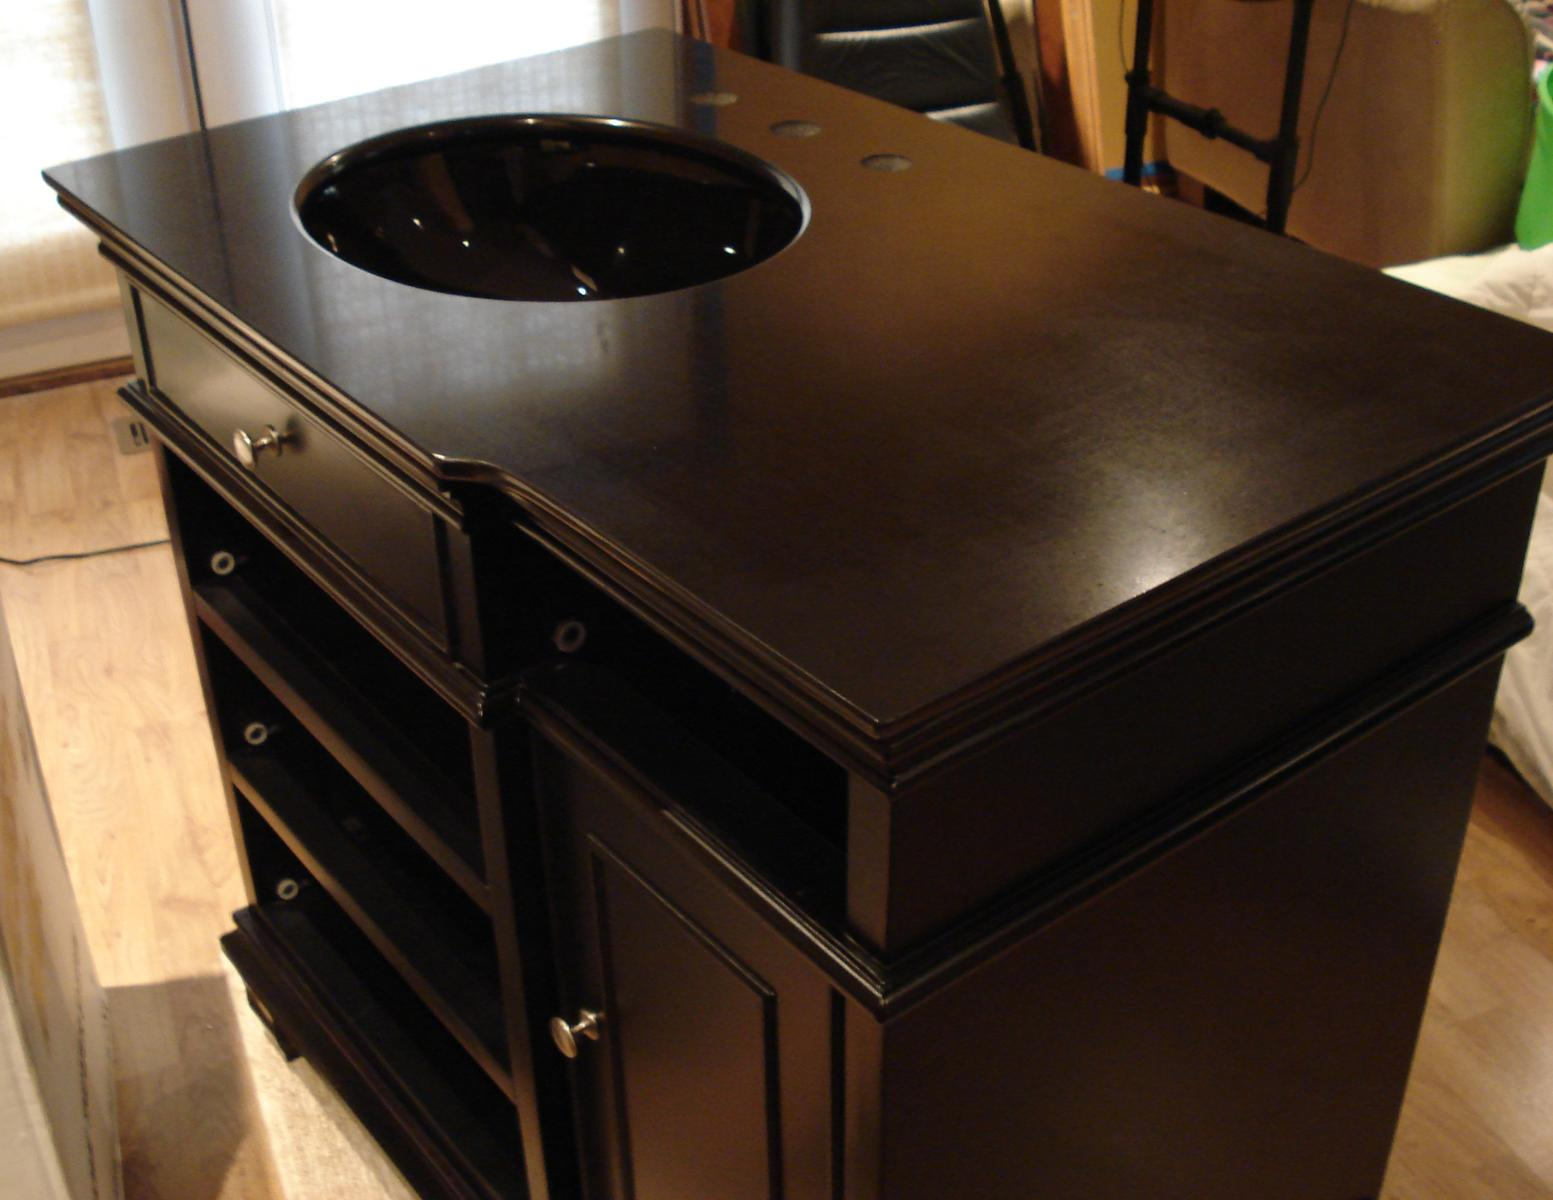 Countertop Paint Black : What color blue is best with black vanity, tiolet & nickel accessories ...